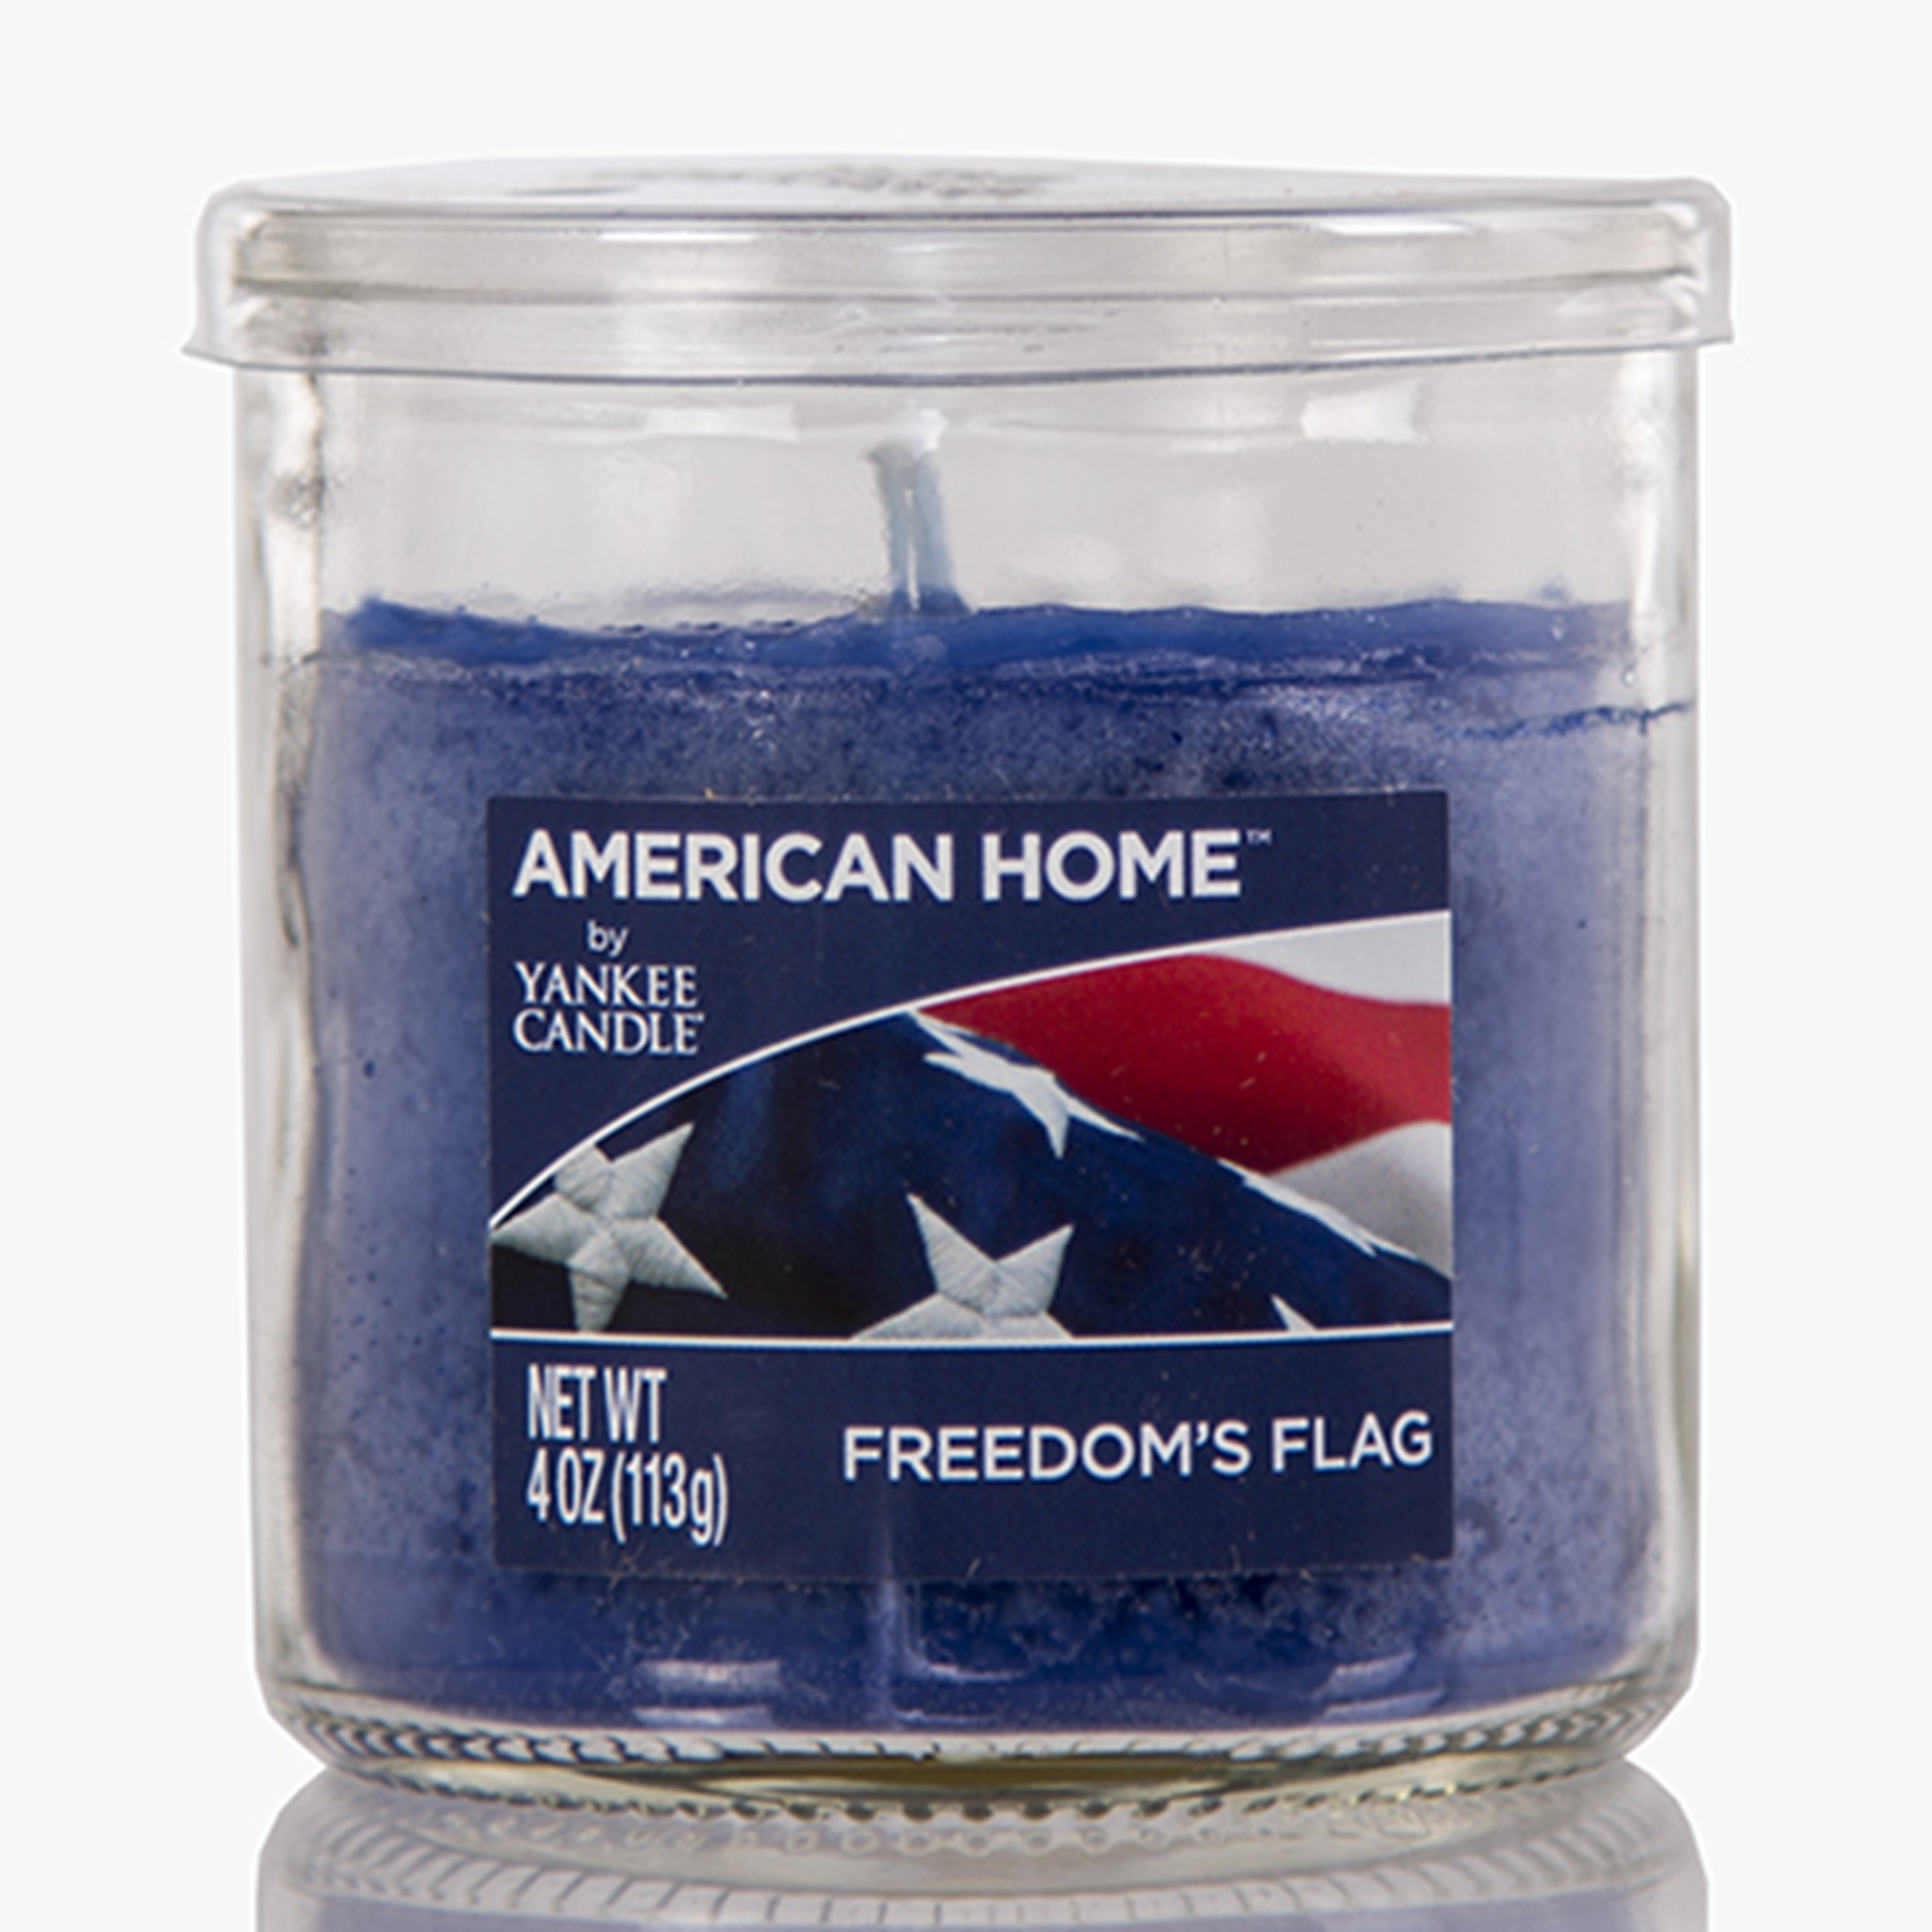 American Home by Yankee Candle Freedom's Flag, 4 oz Small Tumbler